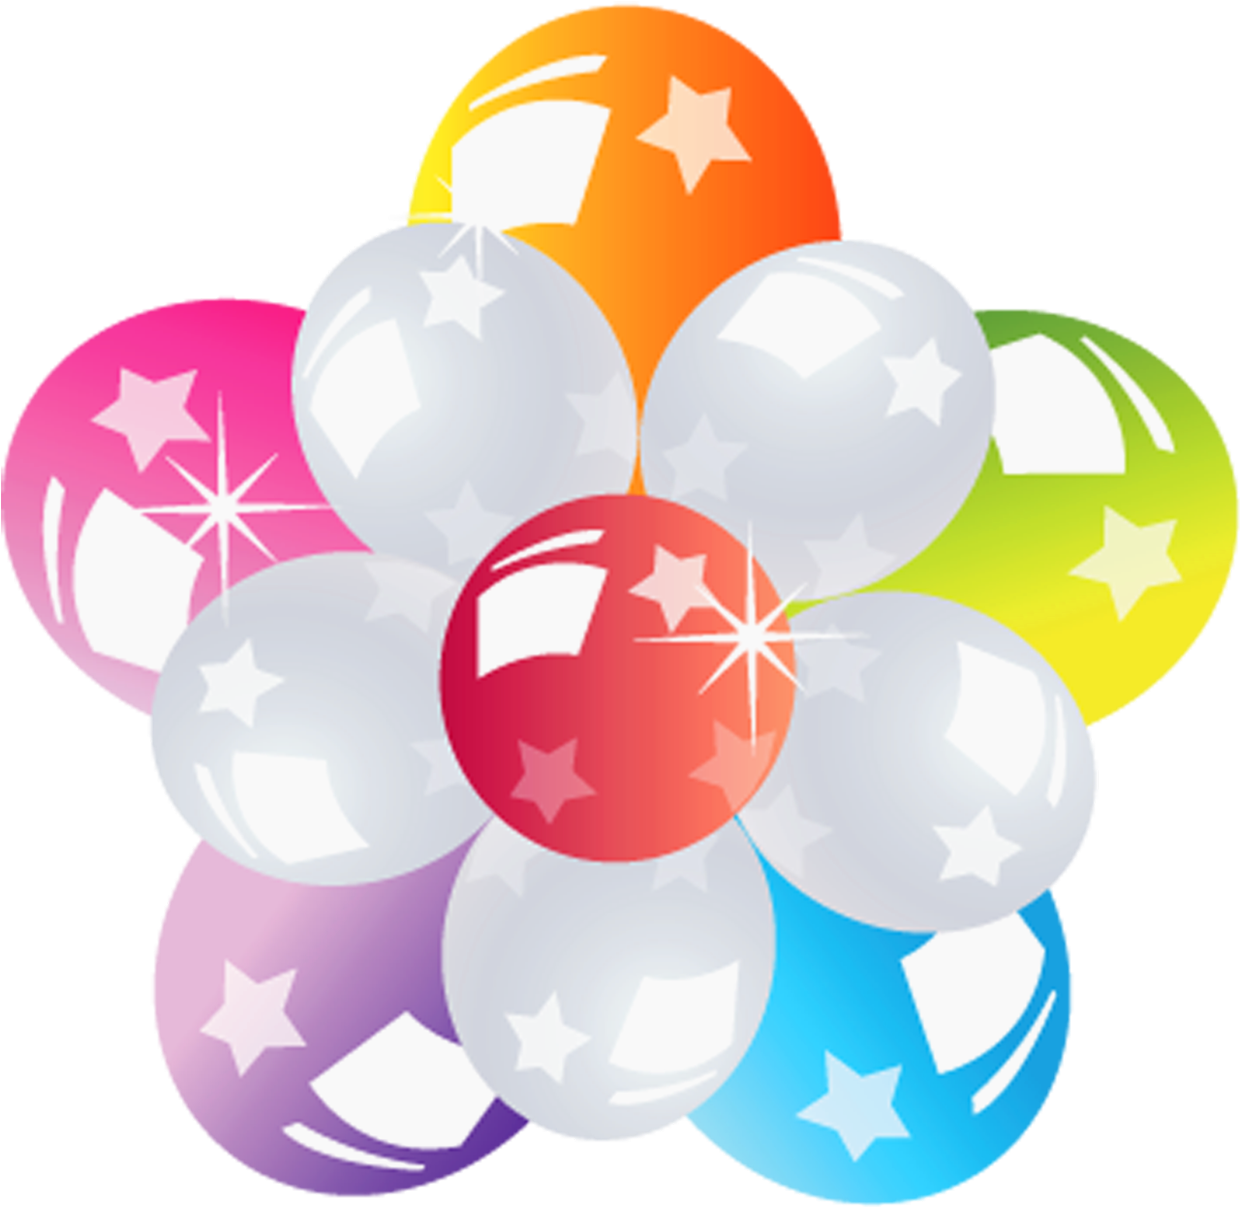 clipart balloons png - photo #44